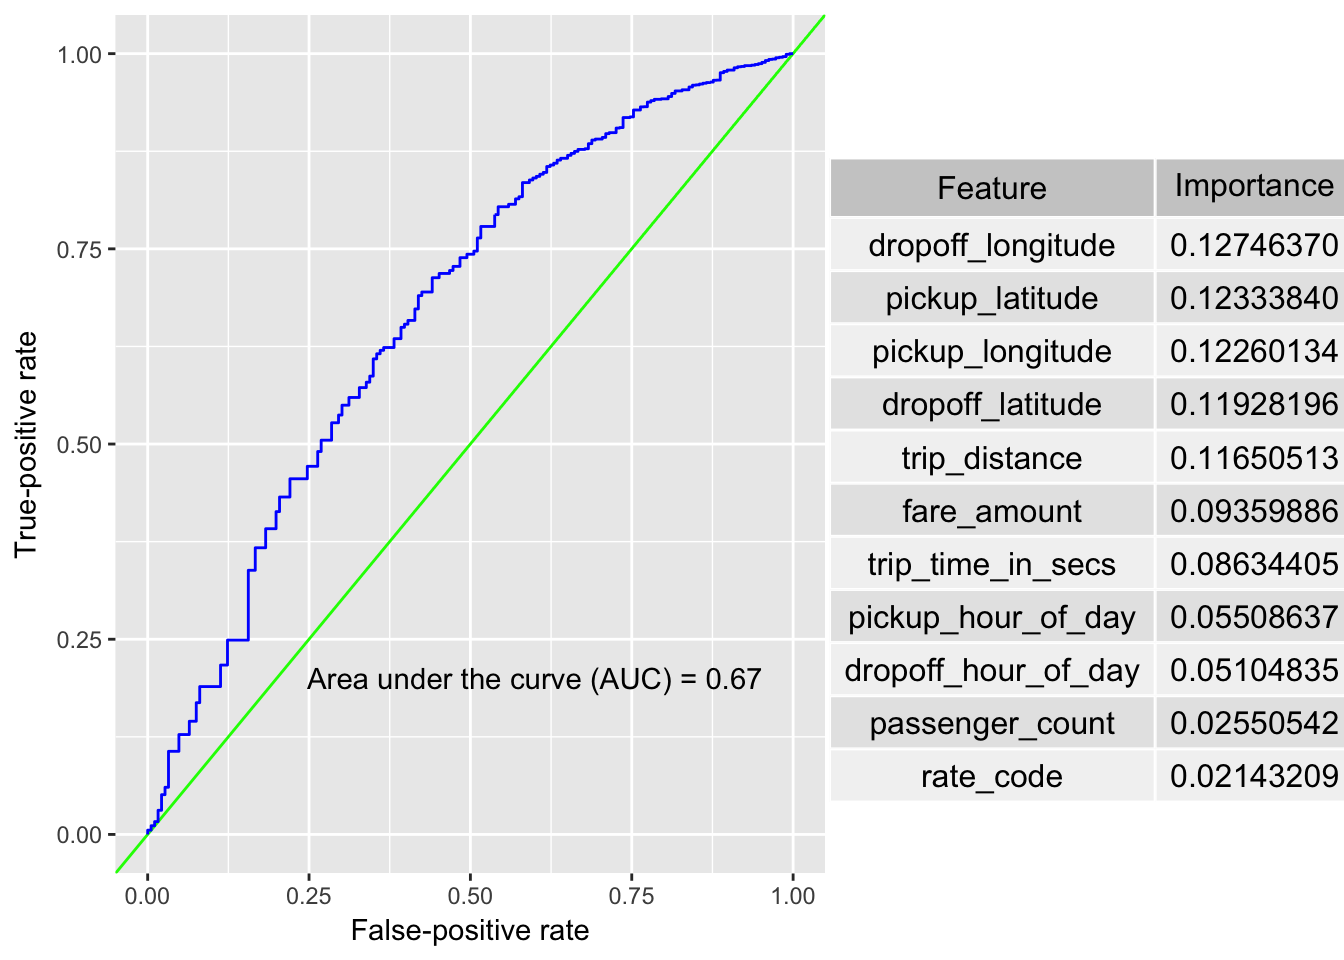 The ROC curve and feature importance list for the random forest model, including all categorical features and additional date-time features